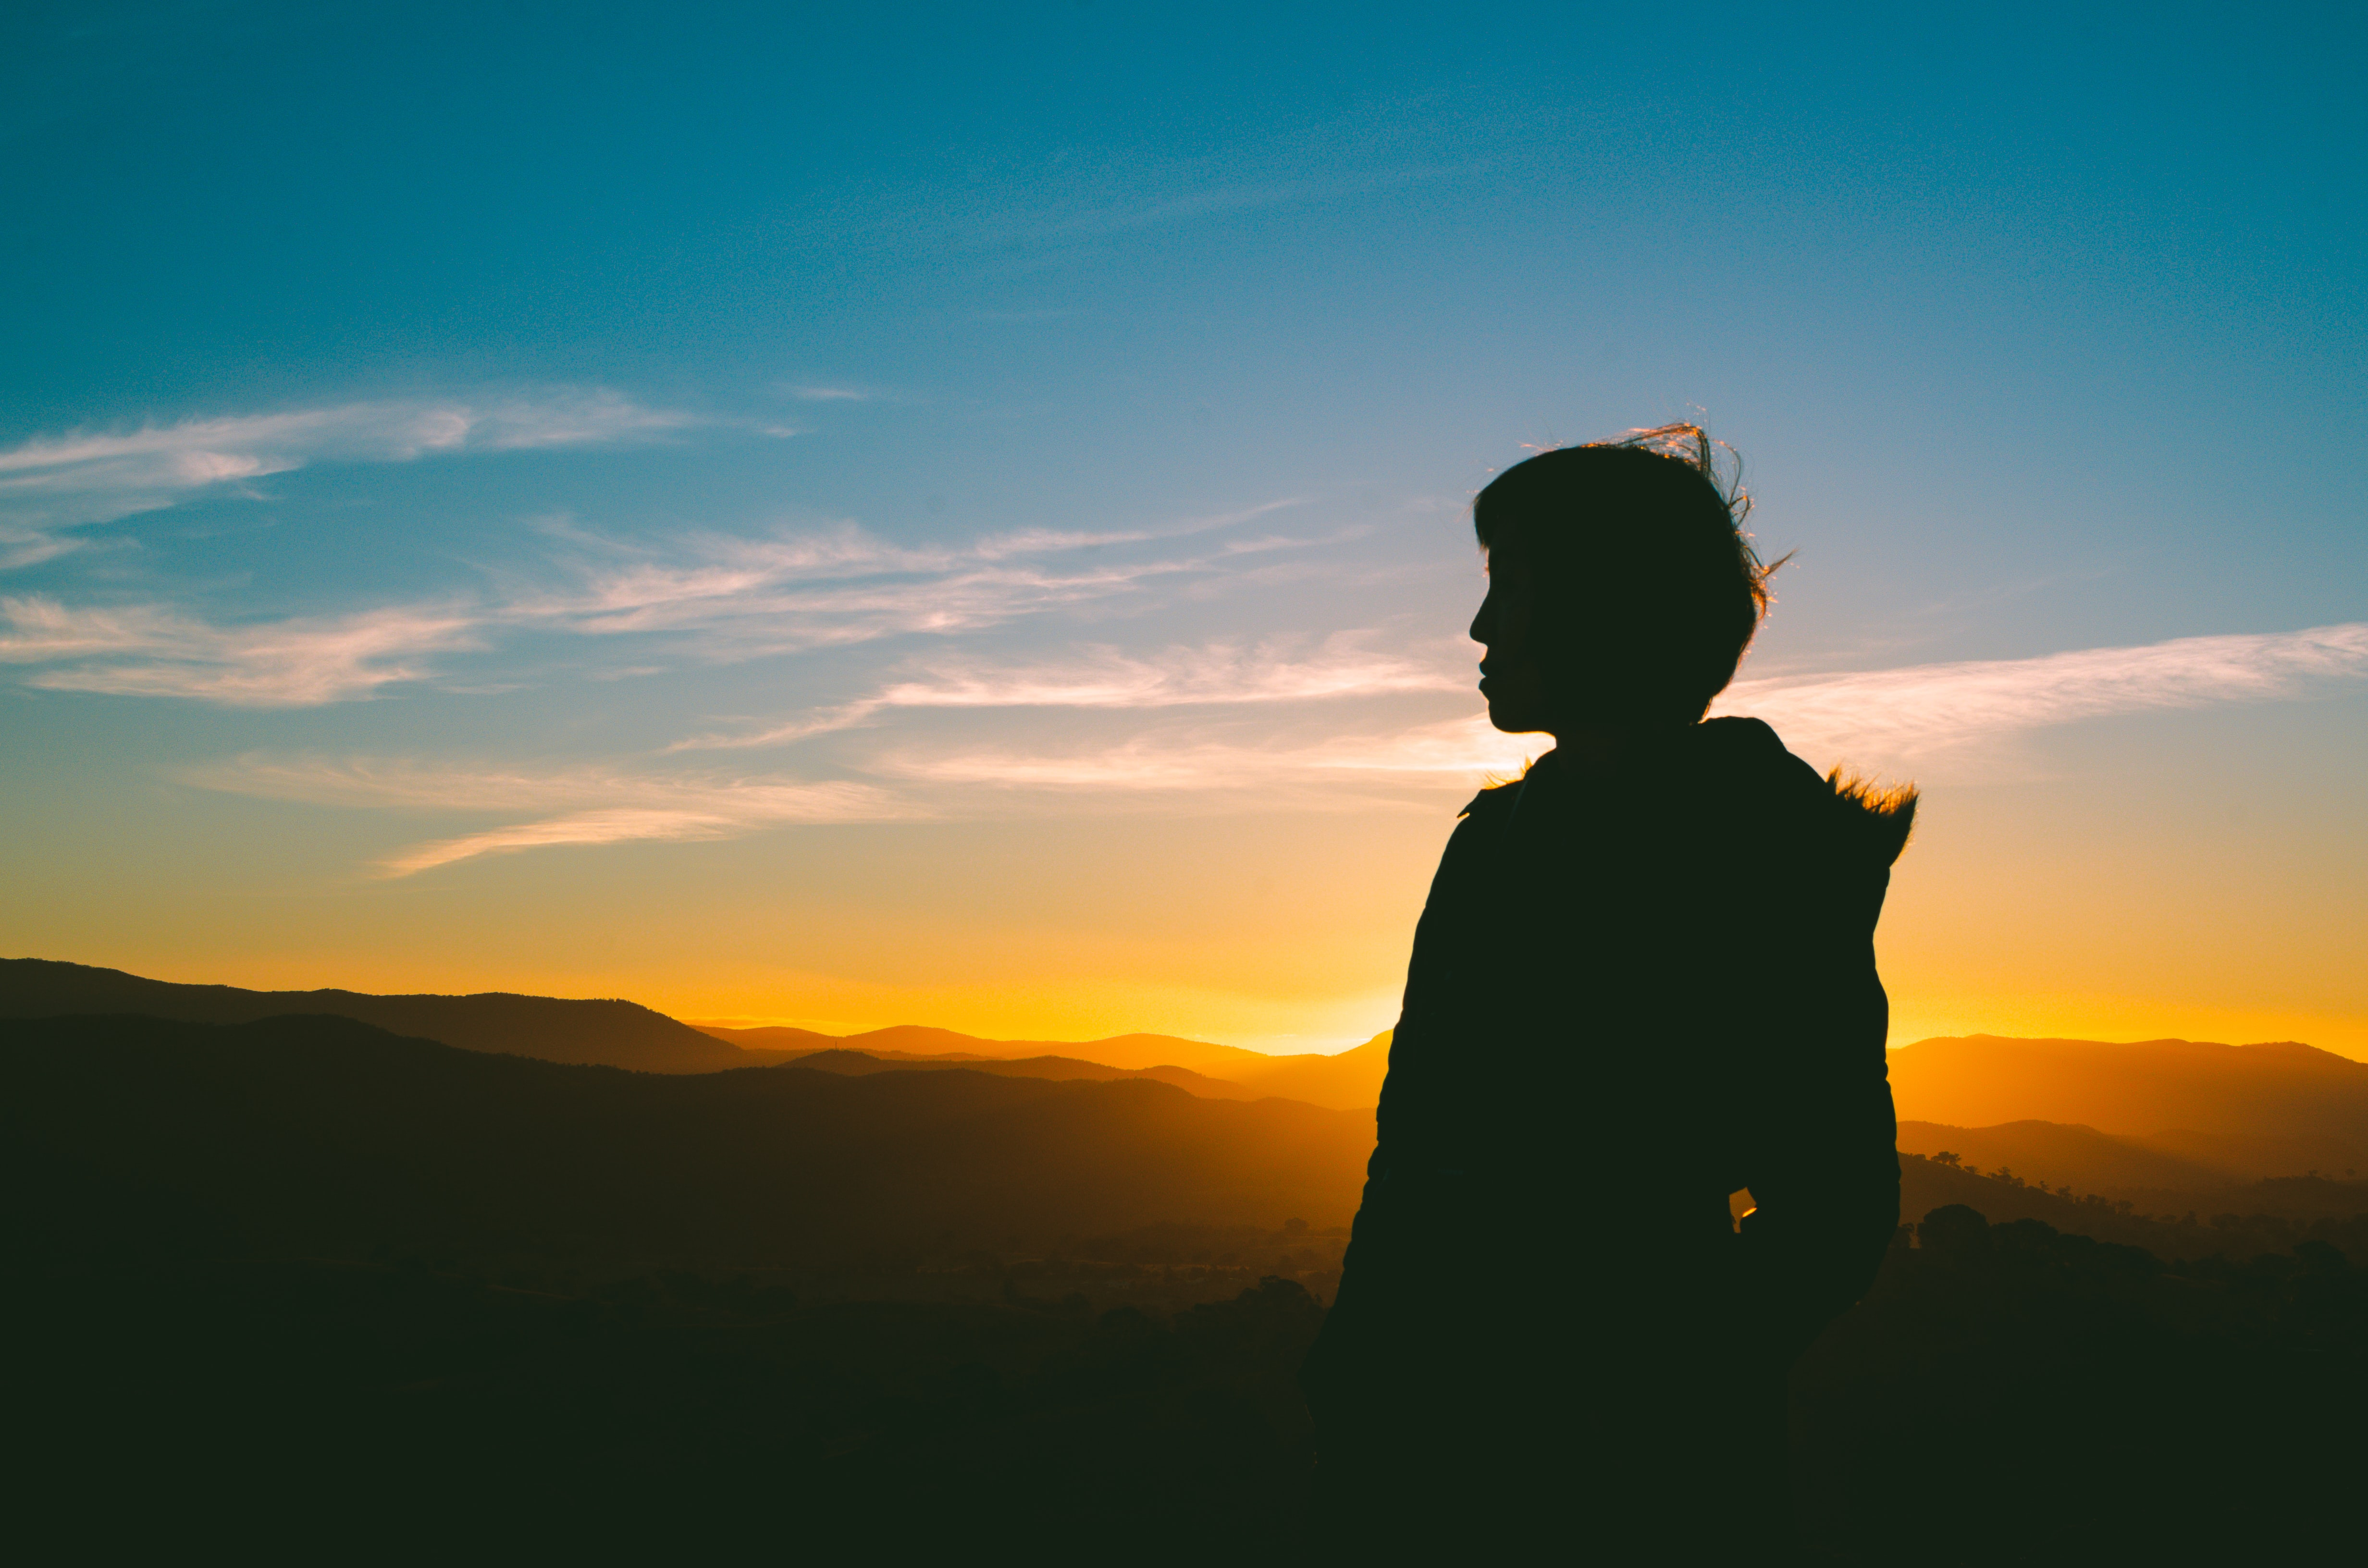 silhouette of person under blue sky